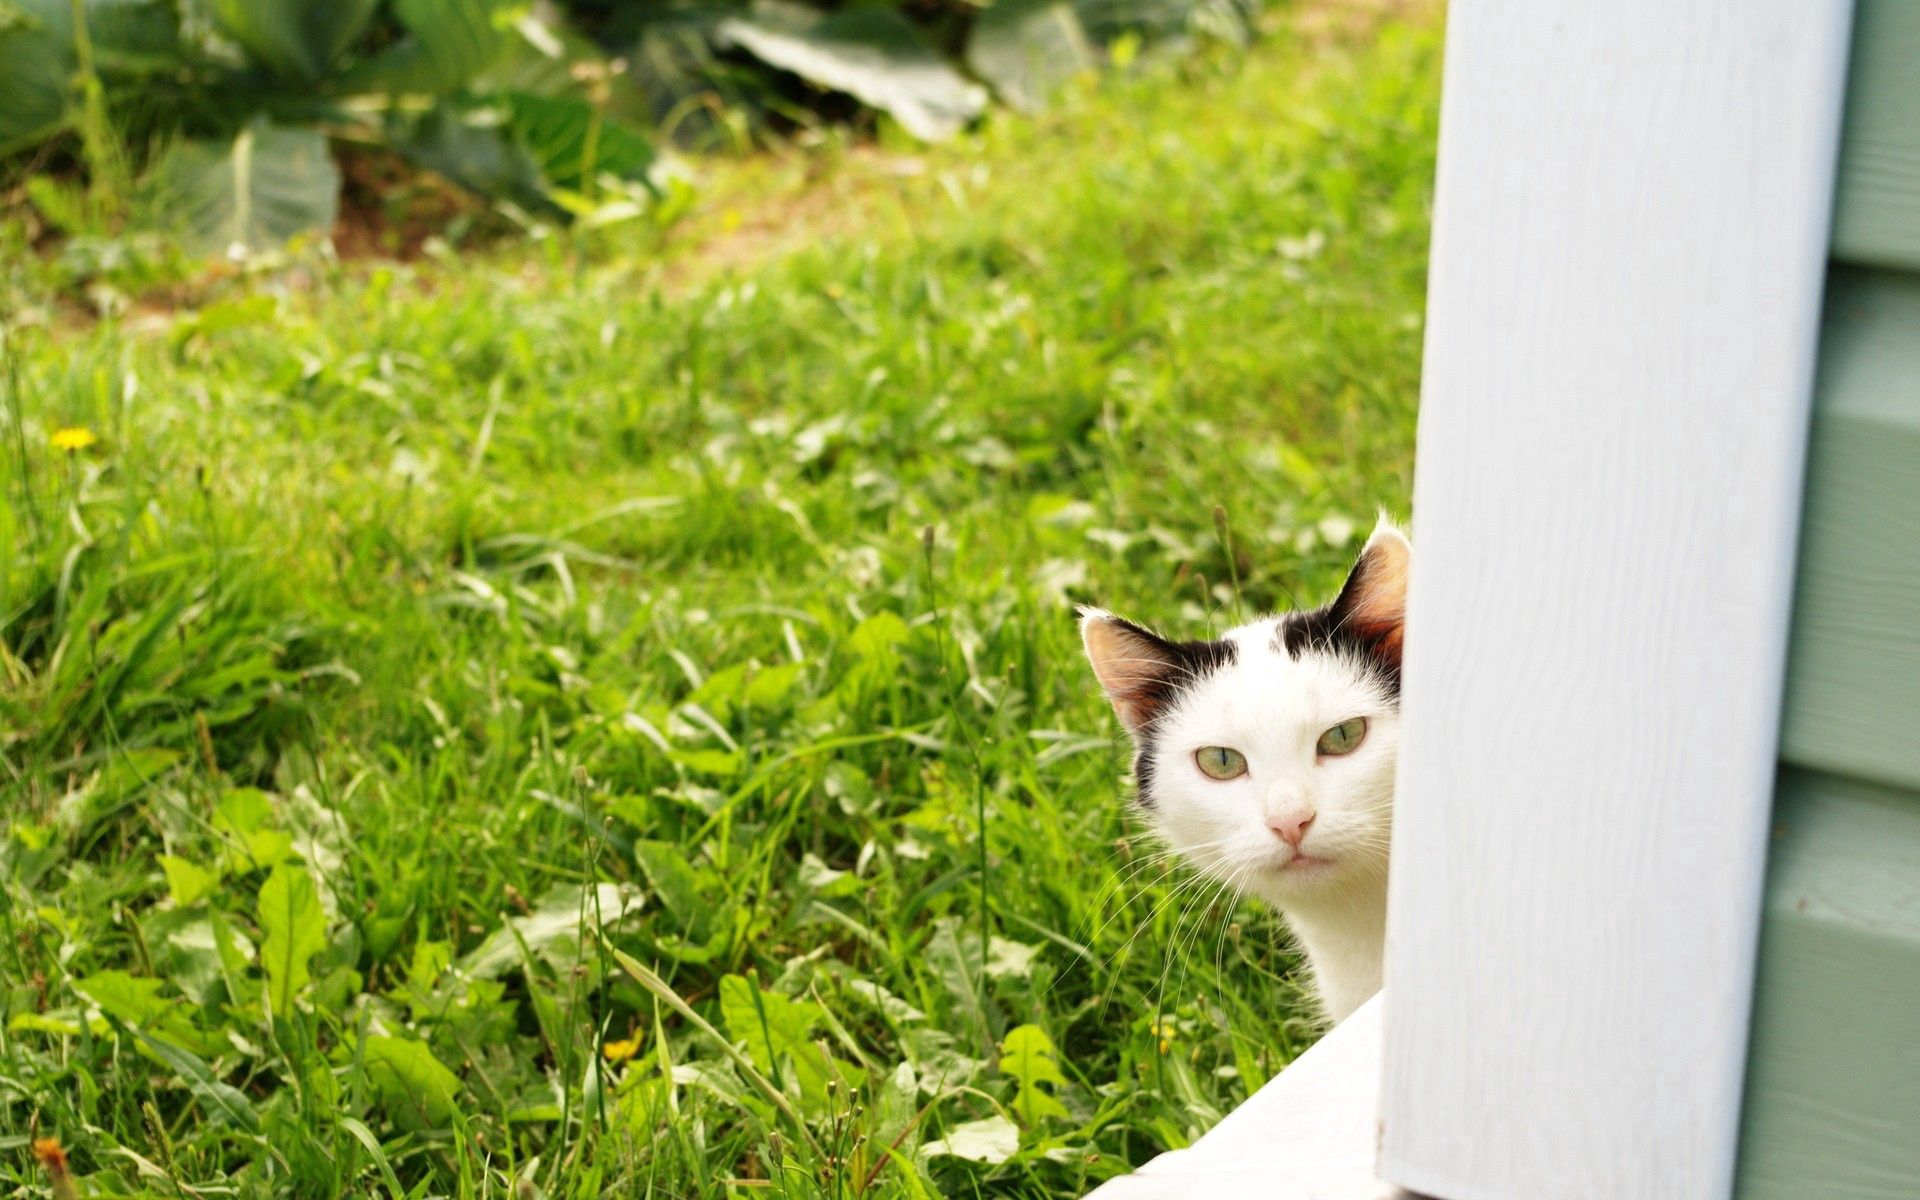 137485 download wallpaper Animals, Cat, Peek Out, Look Out, Grass, Window screensavers and pictures for free